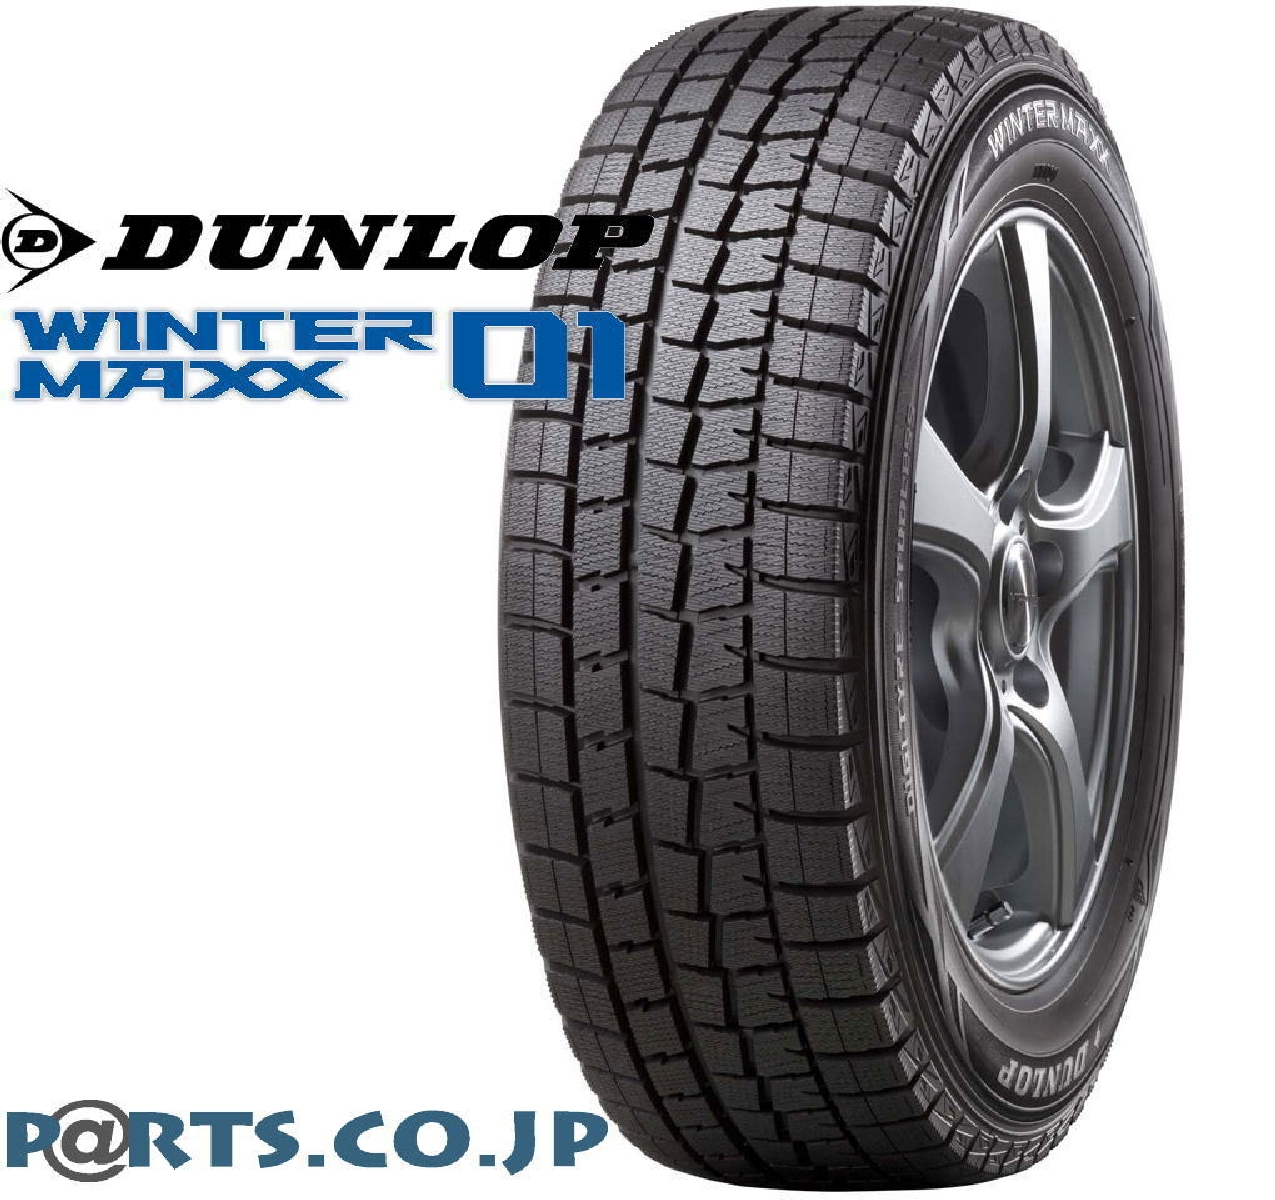 DUNLOP(ダンロップ) DUNLOP WINTER MAXX WM01 165/55R15 75Q